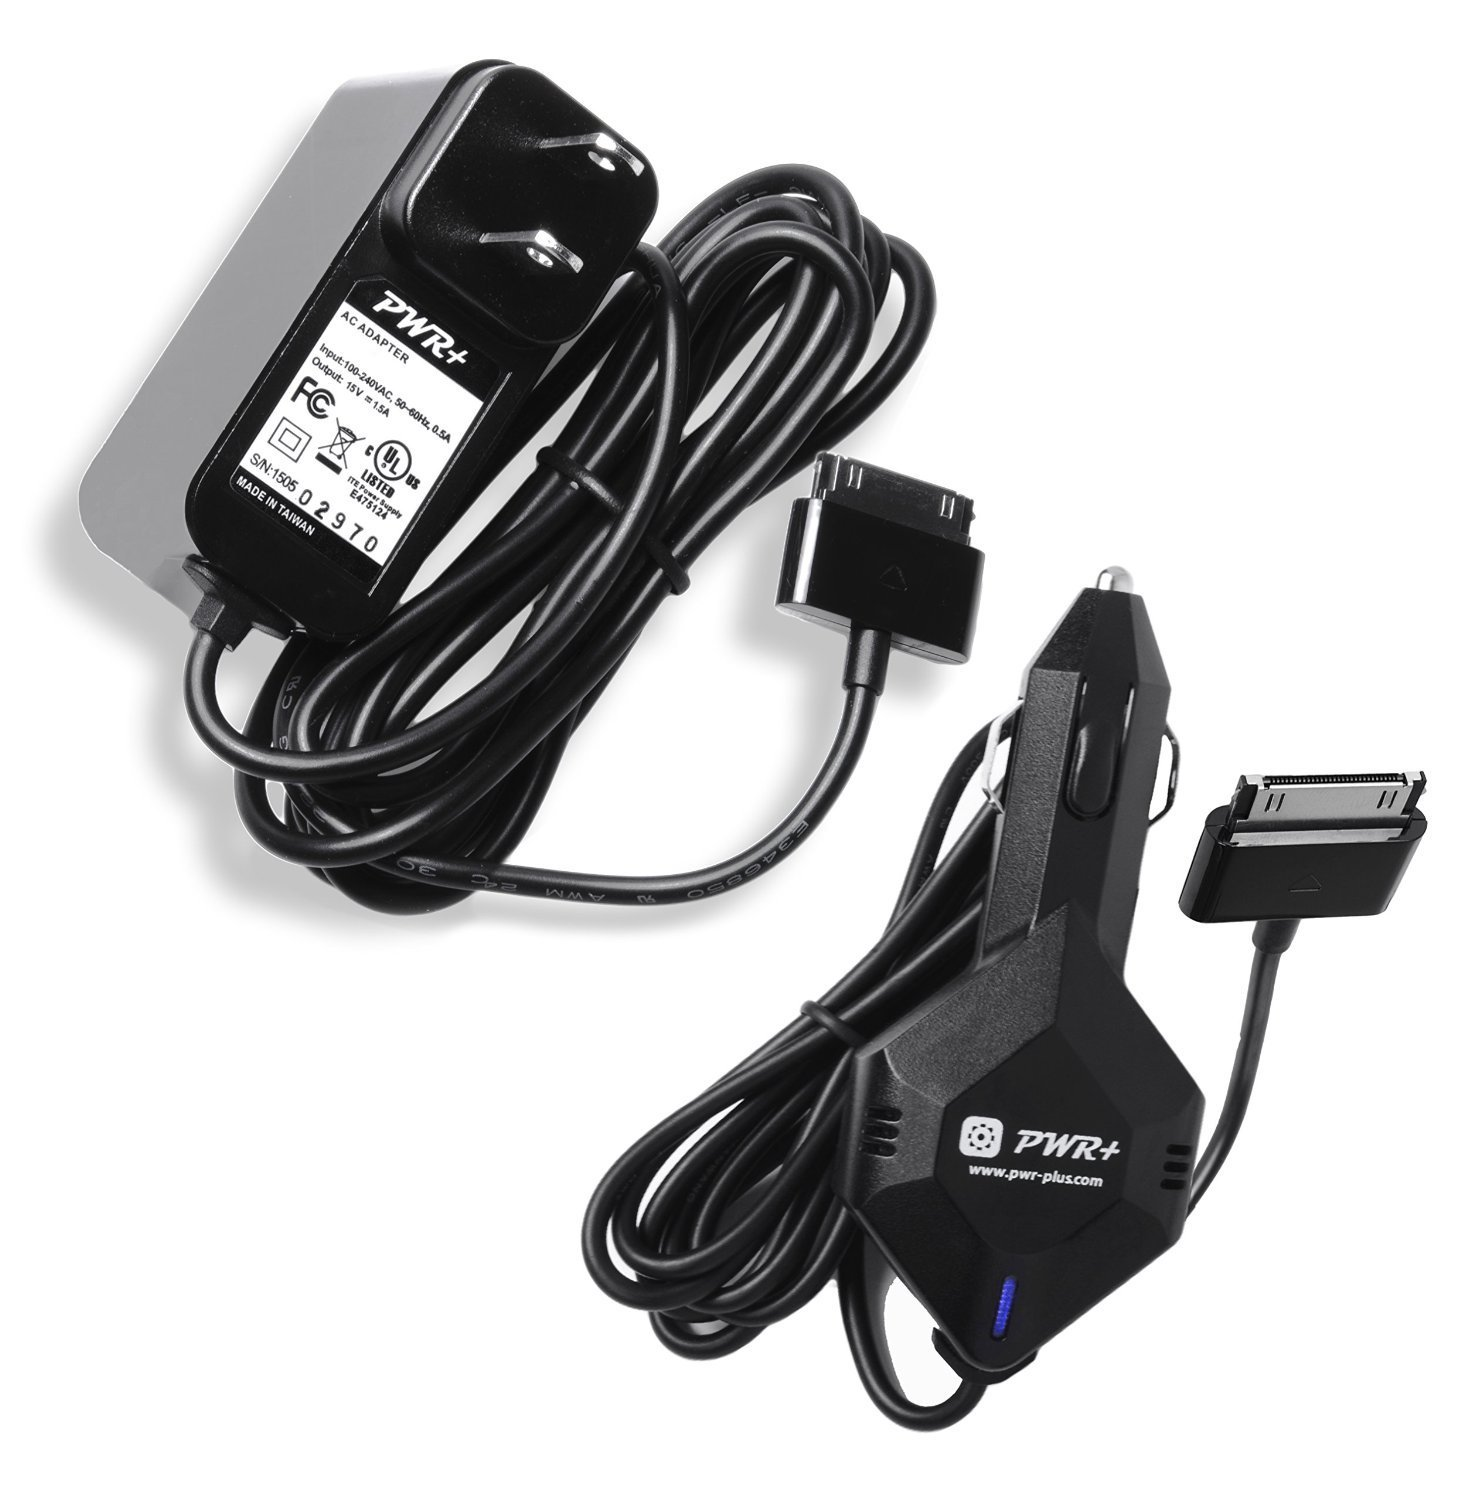 [UL Listed] Pwr+ Extra Long Cord Combo Rapid Car Charger and Ac Adapter for Asus Transformer Pad Infinity Tablet Pc Tf700 Tf700t ; 90-xb2vokpw00000y Epad-01 15v Tab Dc Auto Power Supply